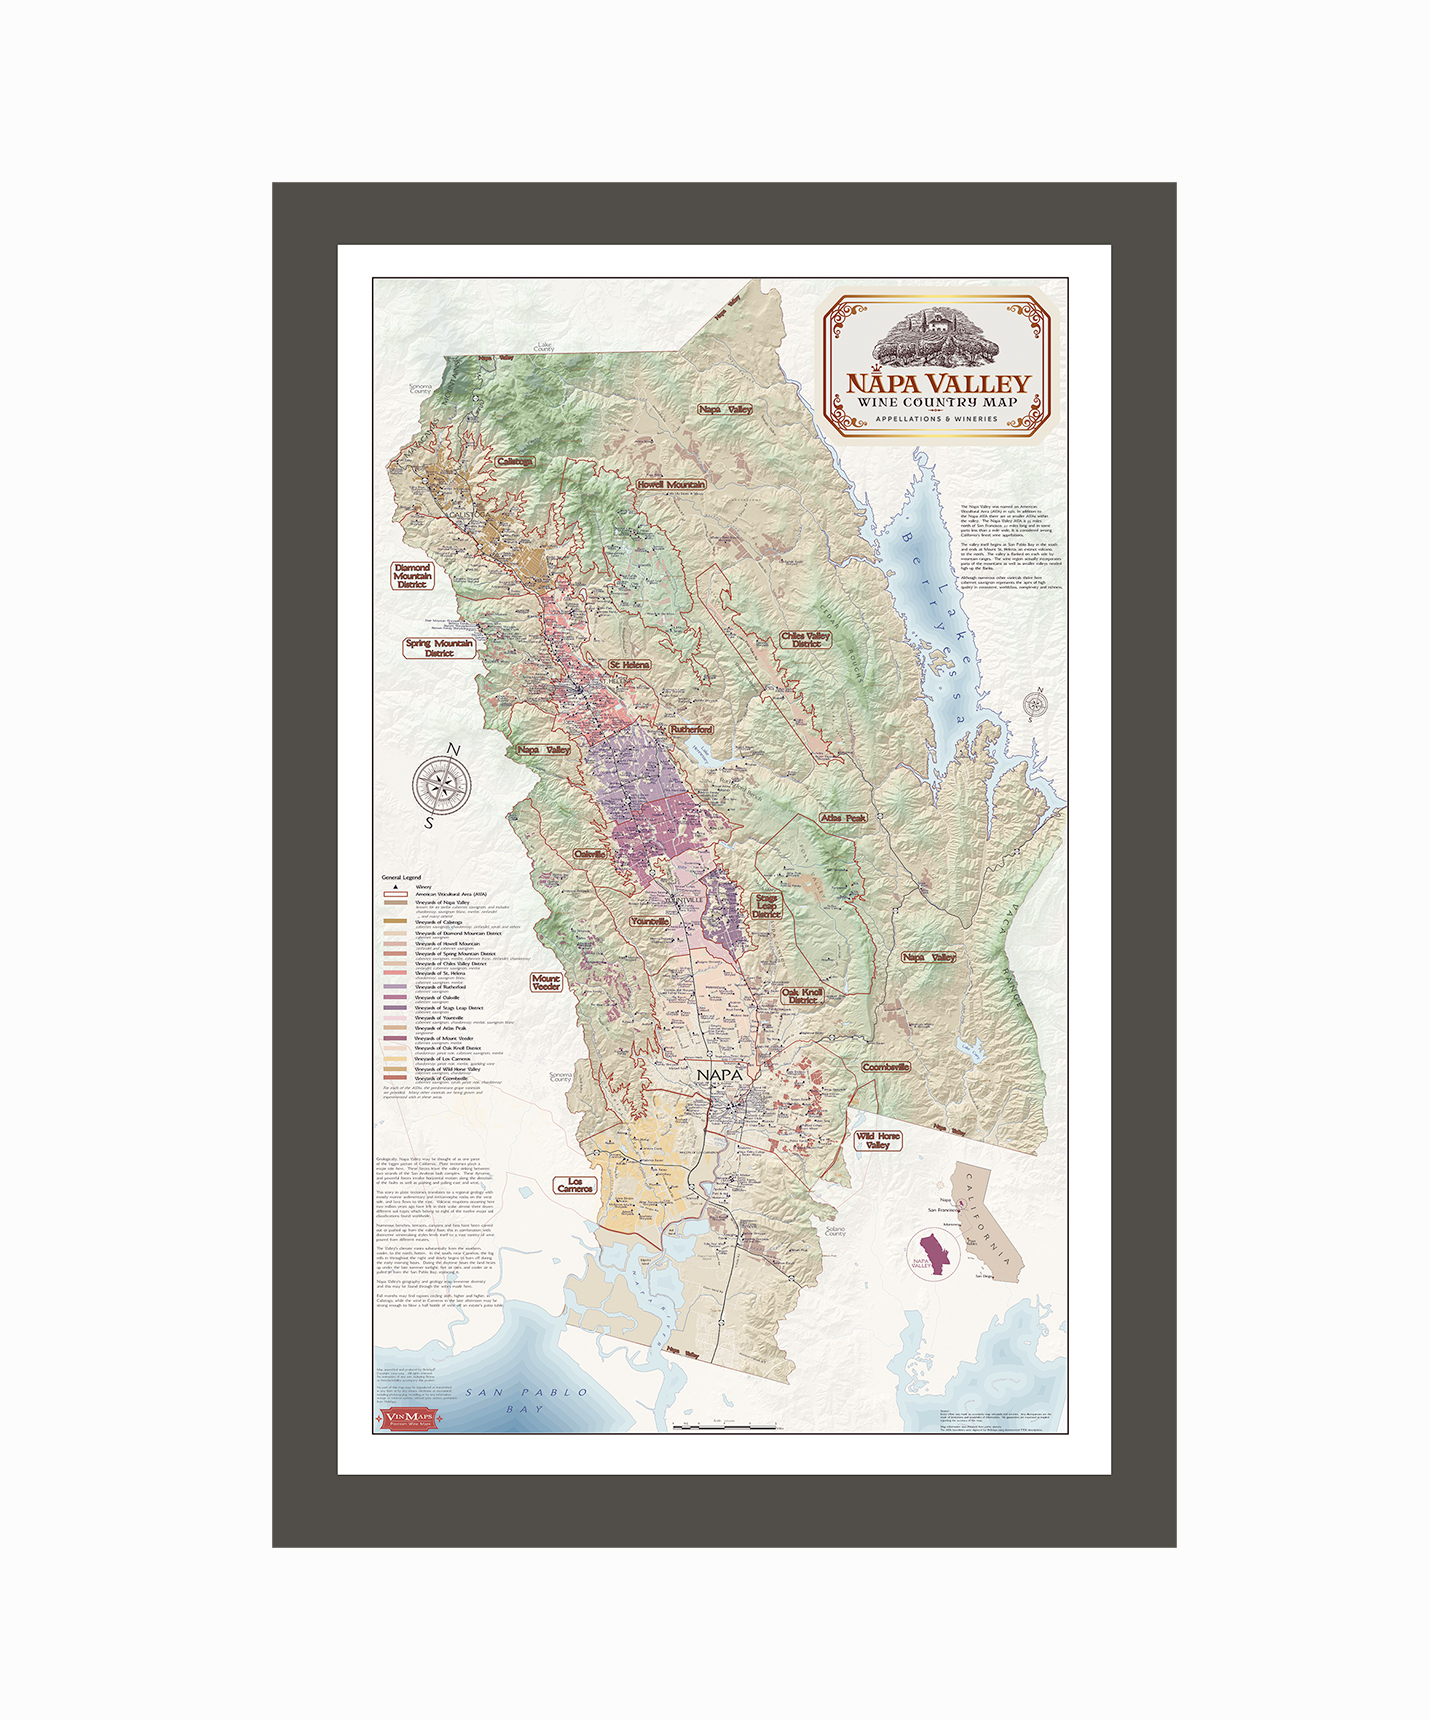 Napa Valley Wine Country Map - Appellations & Wineries Framed